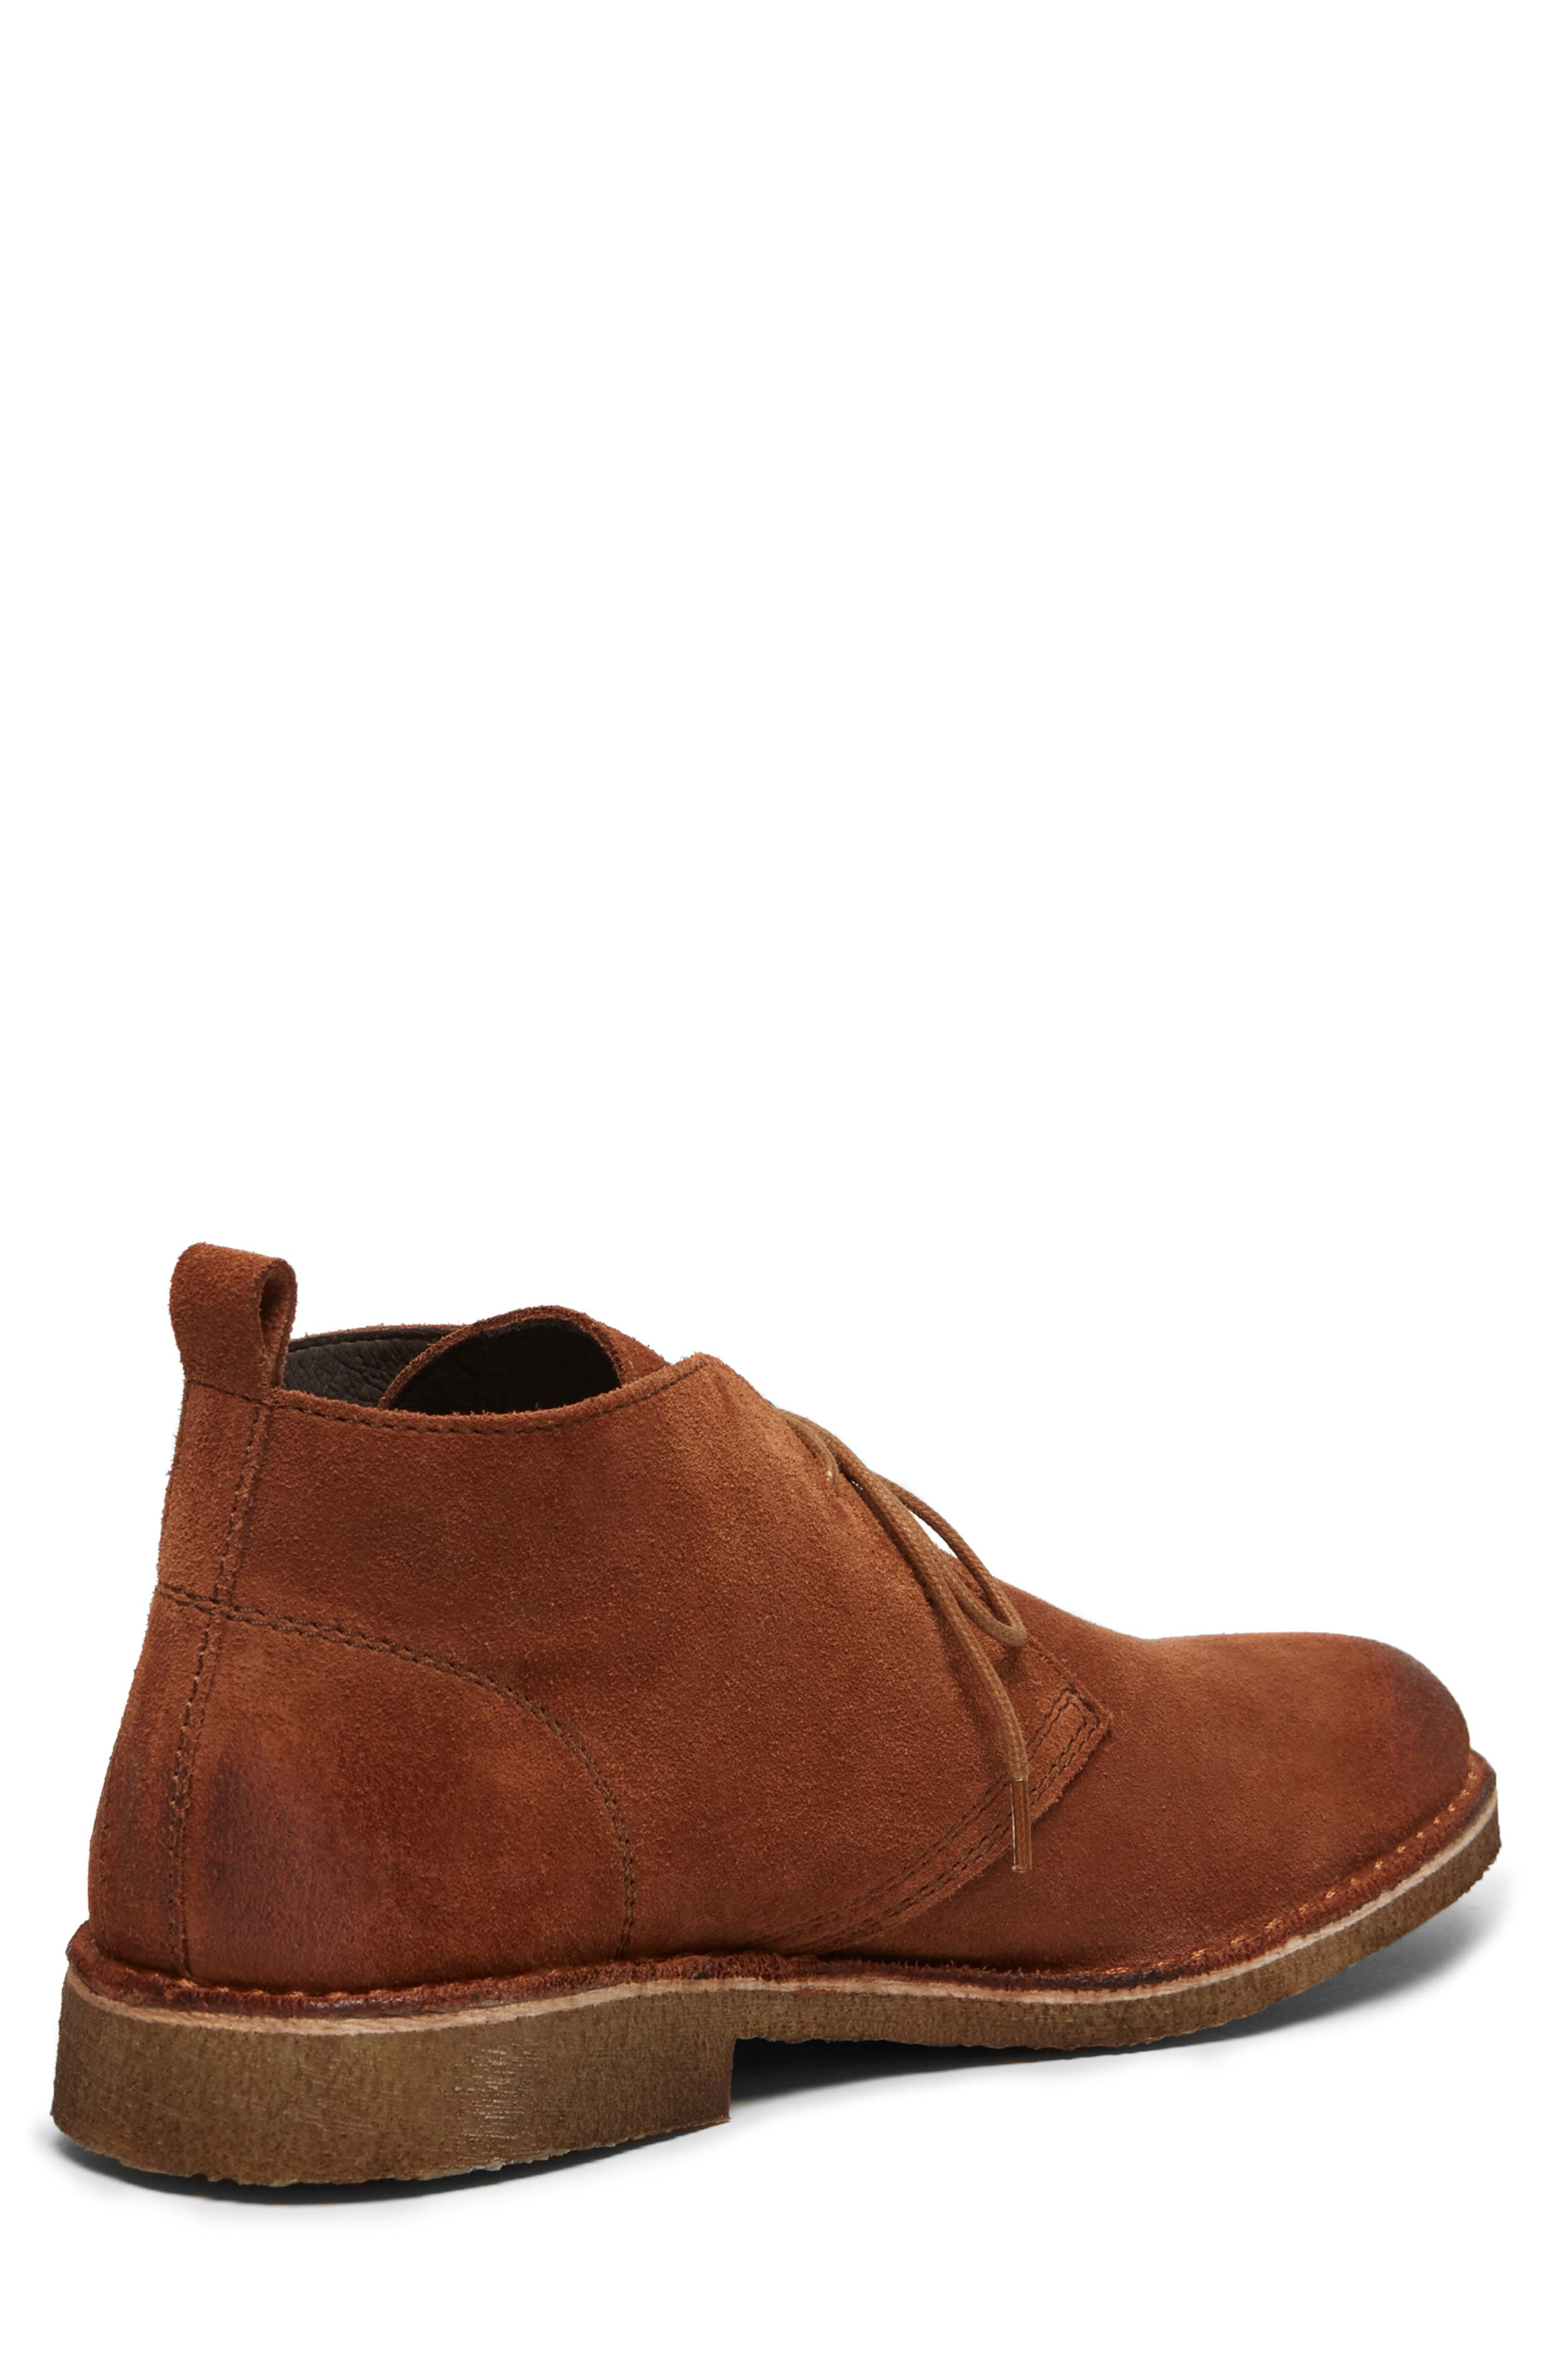 Hewitt Chukka Boot,                             Alternate thumbnail 5, color,                             RUST SUEDE